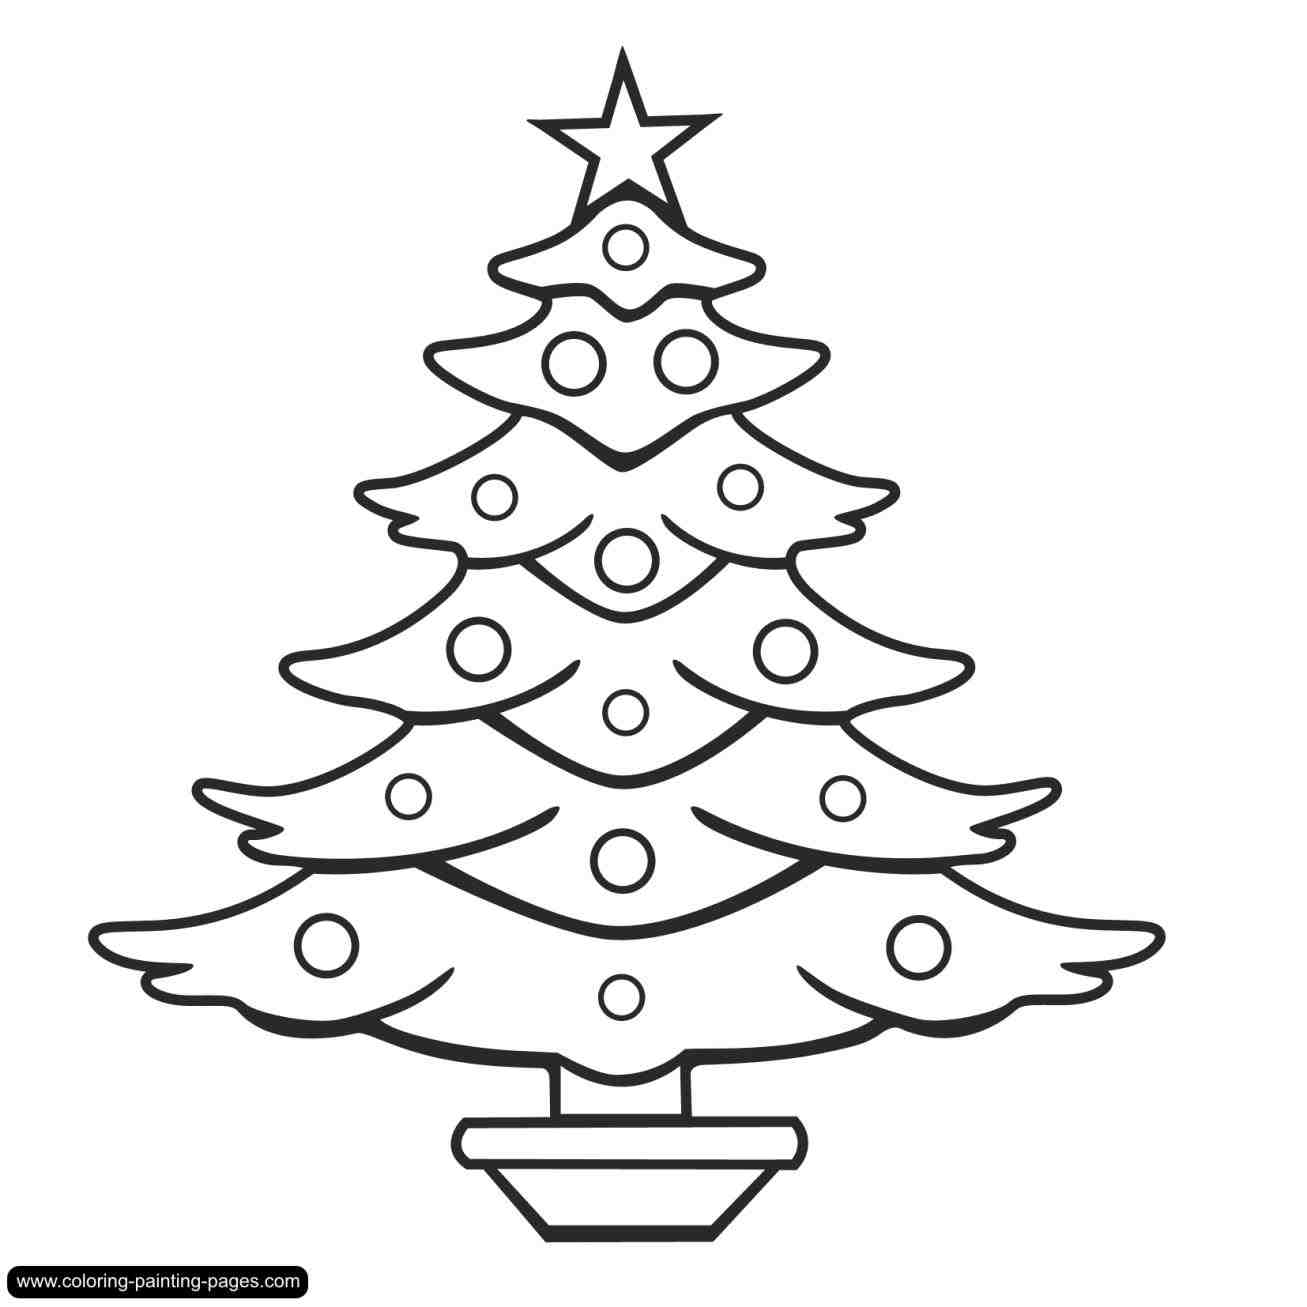 1307x1307 Simple Christmas Tree Drawings Cheminee.website